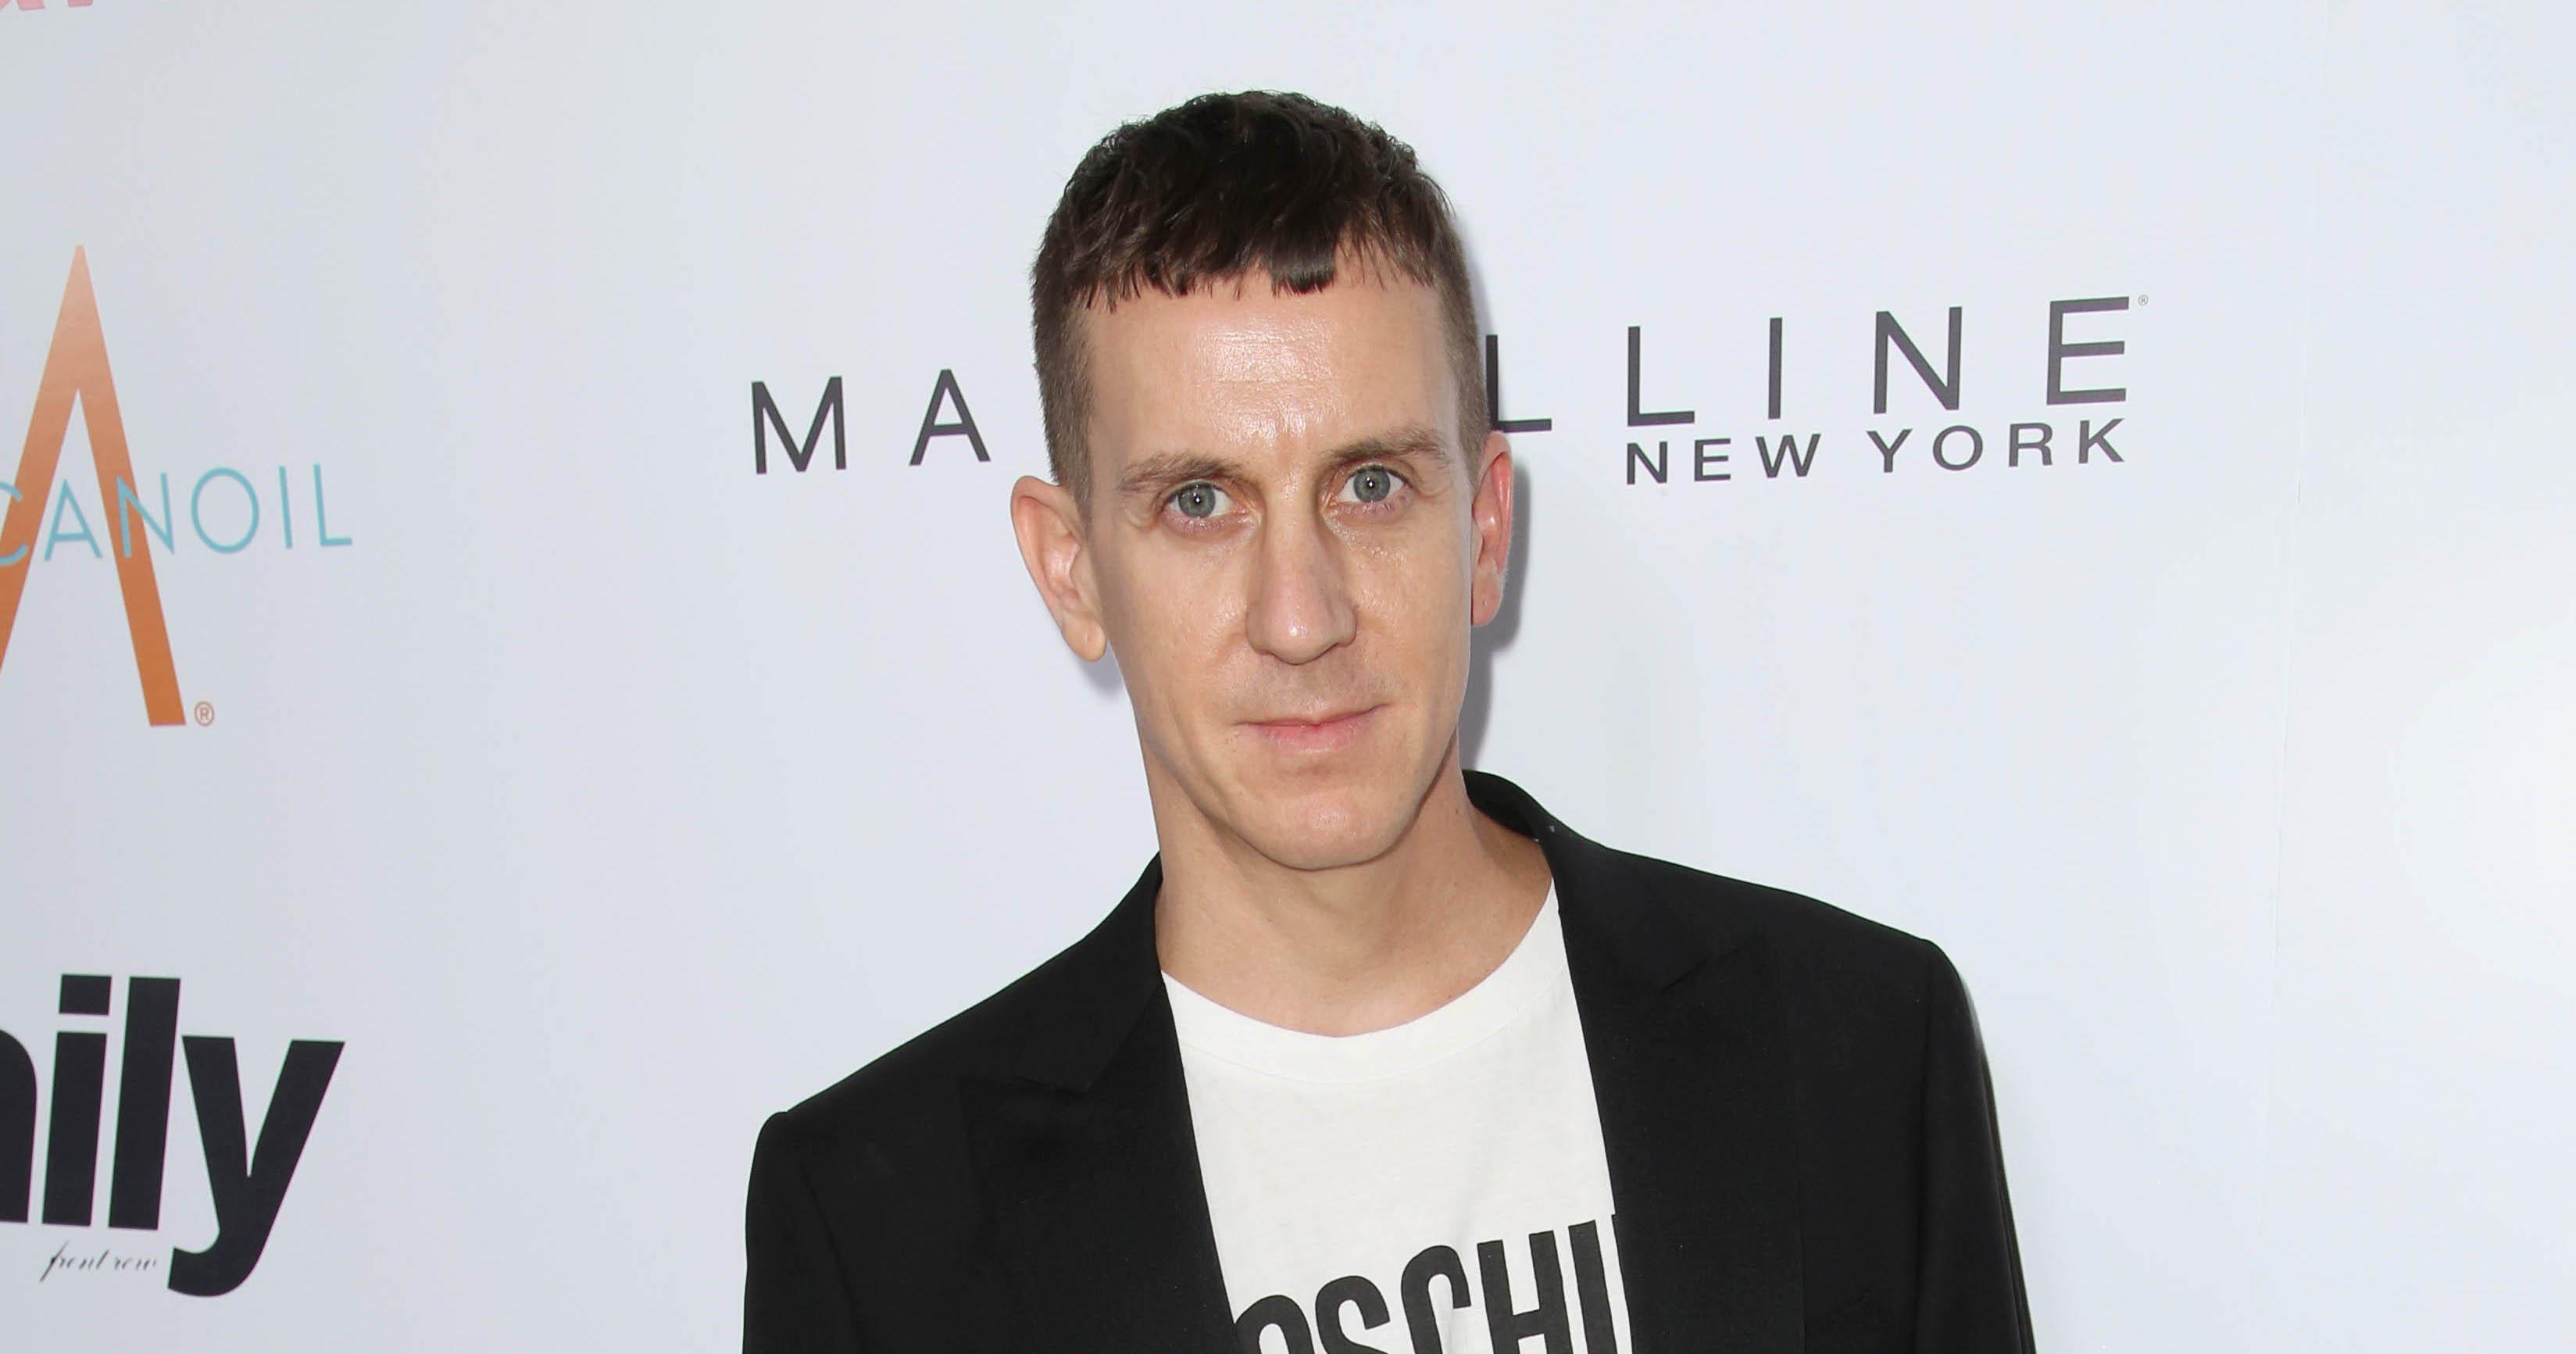 VMAs: Designer Jeremy Scott on Miley Cyrus, the Moonman and What He'd Do to the Oscar